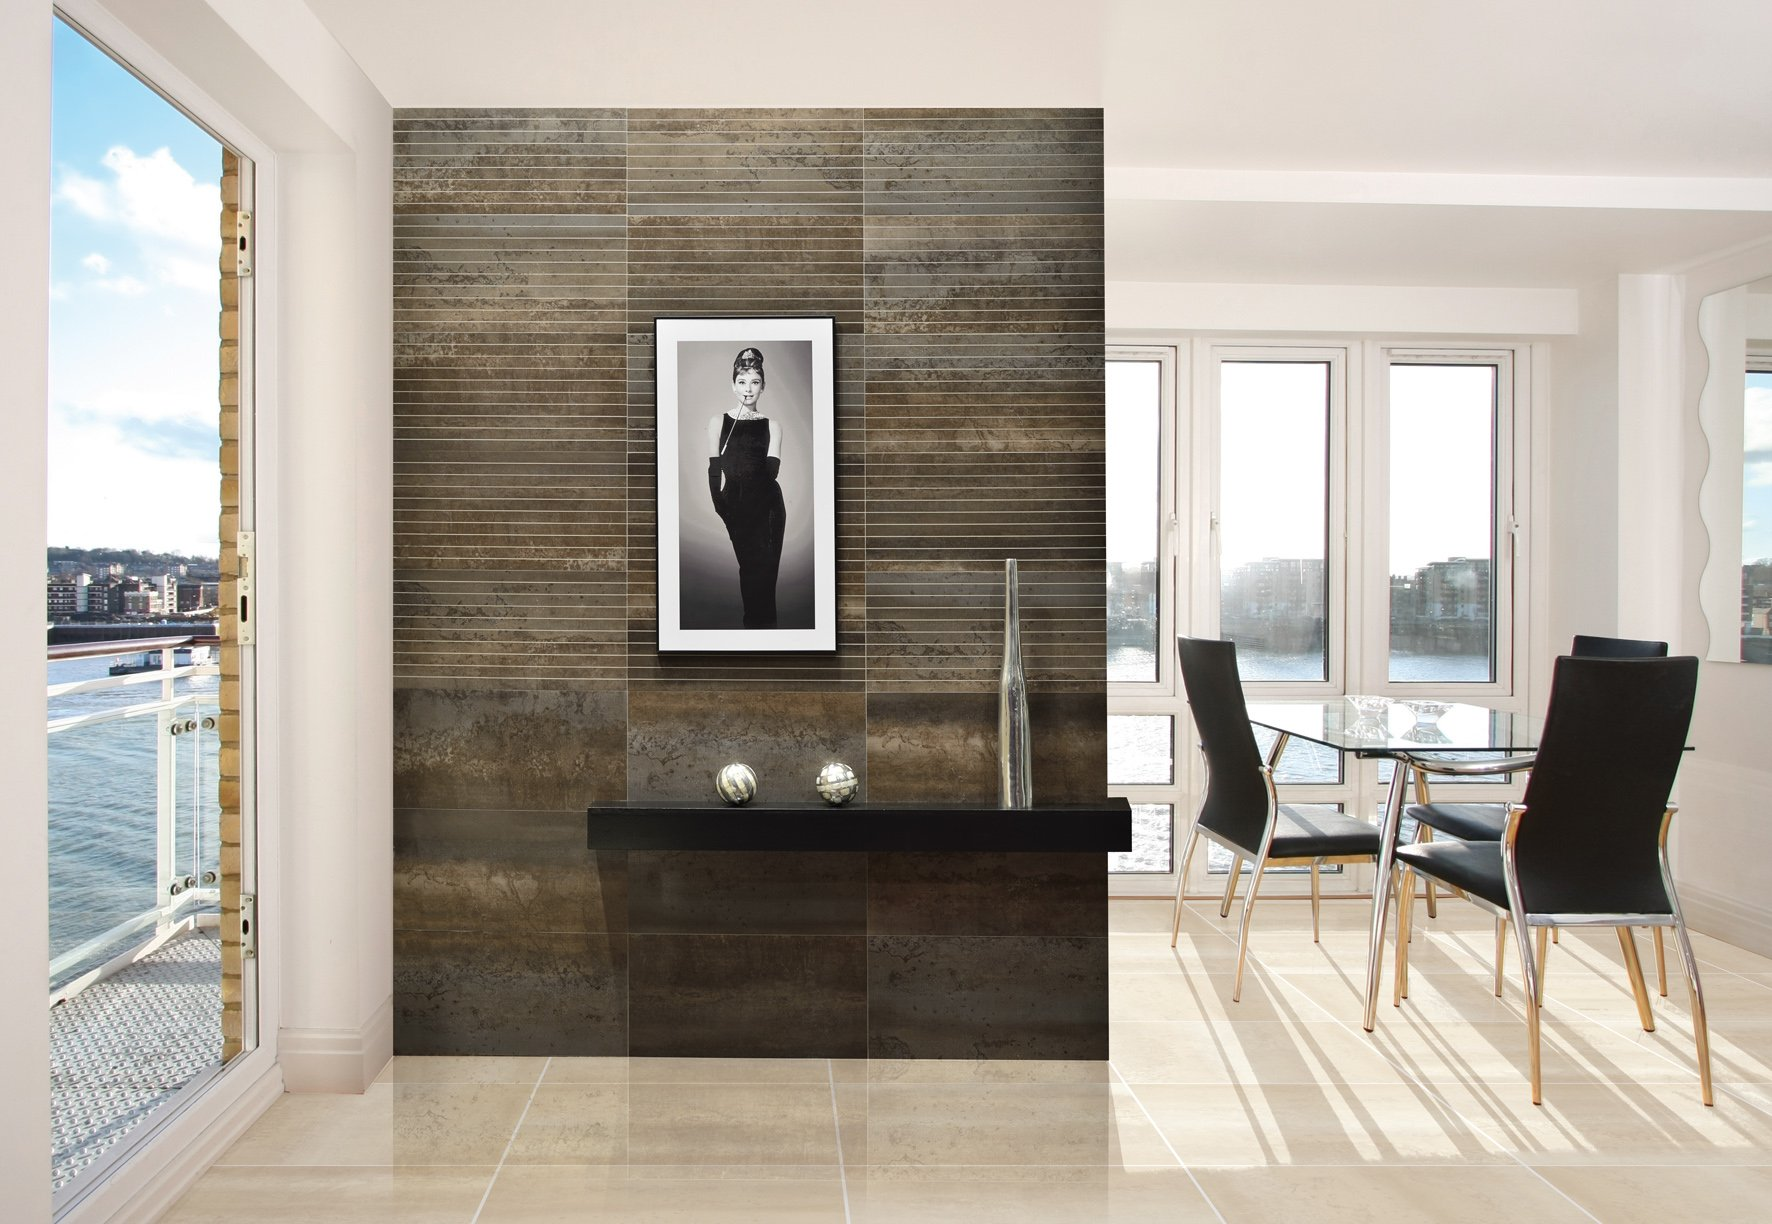 Cosmos Lux 60. Rectified porcelain floor tile, suitable for interior spaces.